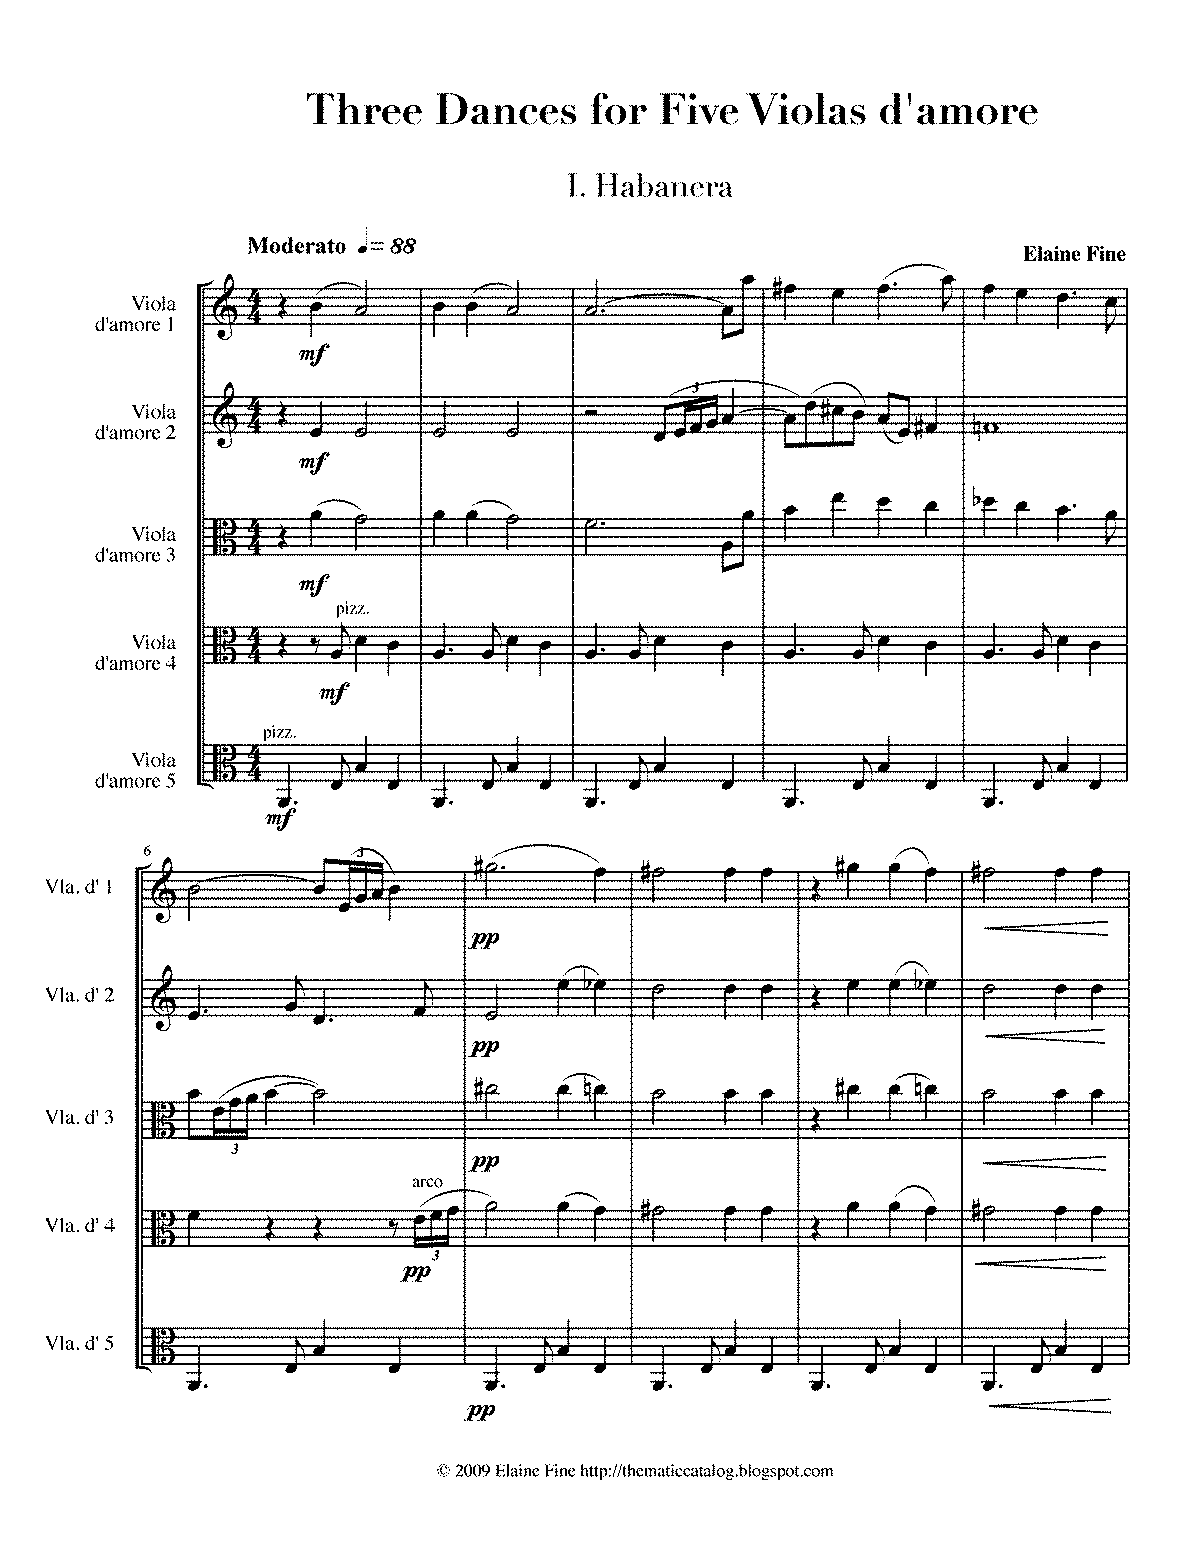 WIMA.1184-Three Dances for Five Violas d amore.pdf